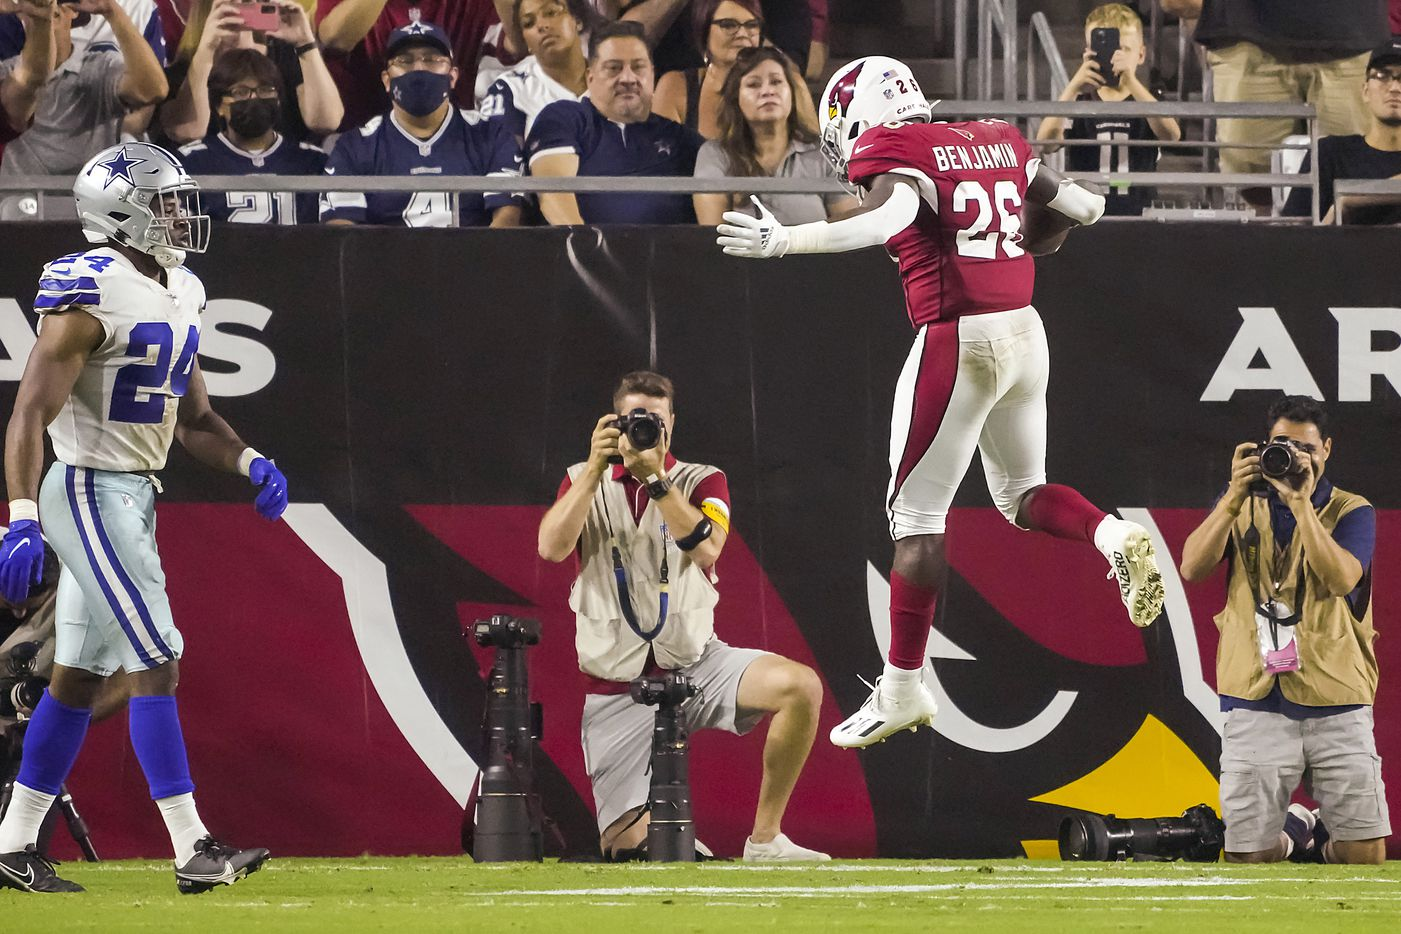 Arizona Cardinals running back Eno Benjamin (26) leaps into the end zone with a touchdown  past Dallas Cowboys cornerback Kelvin Joseph (24) during the second quarter of an NFL football game at State Farm Stadium on Friday, Aug. 13, 2021, in Glendale, Ariz.